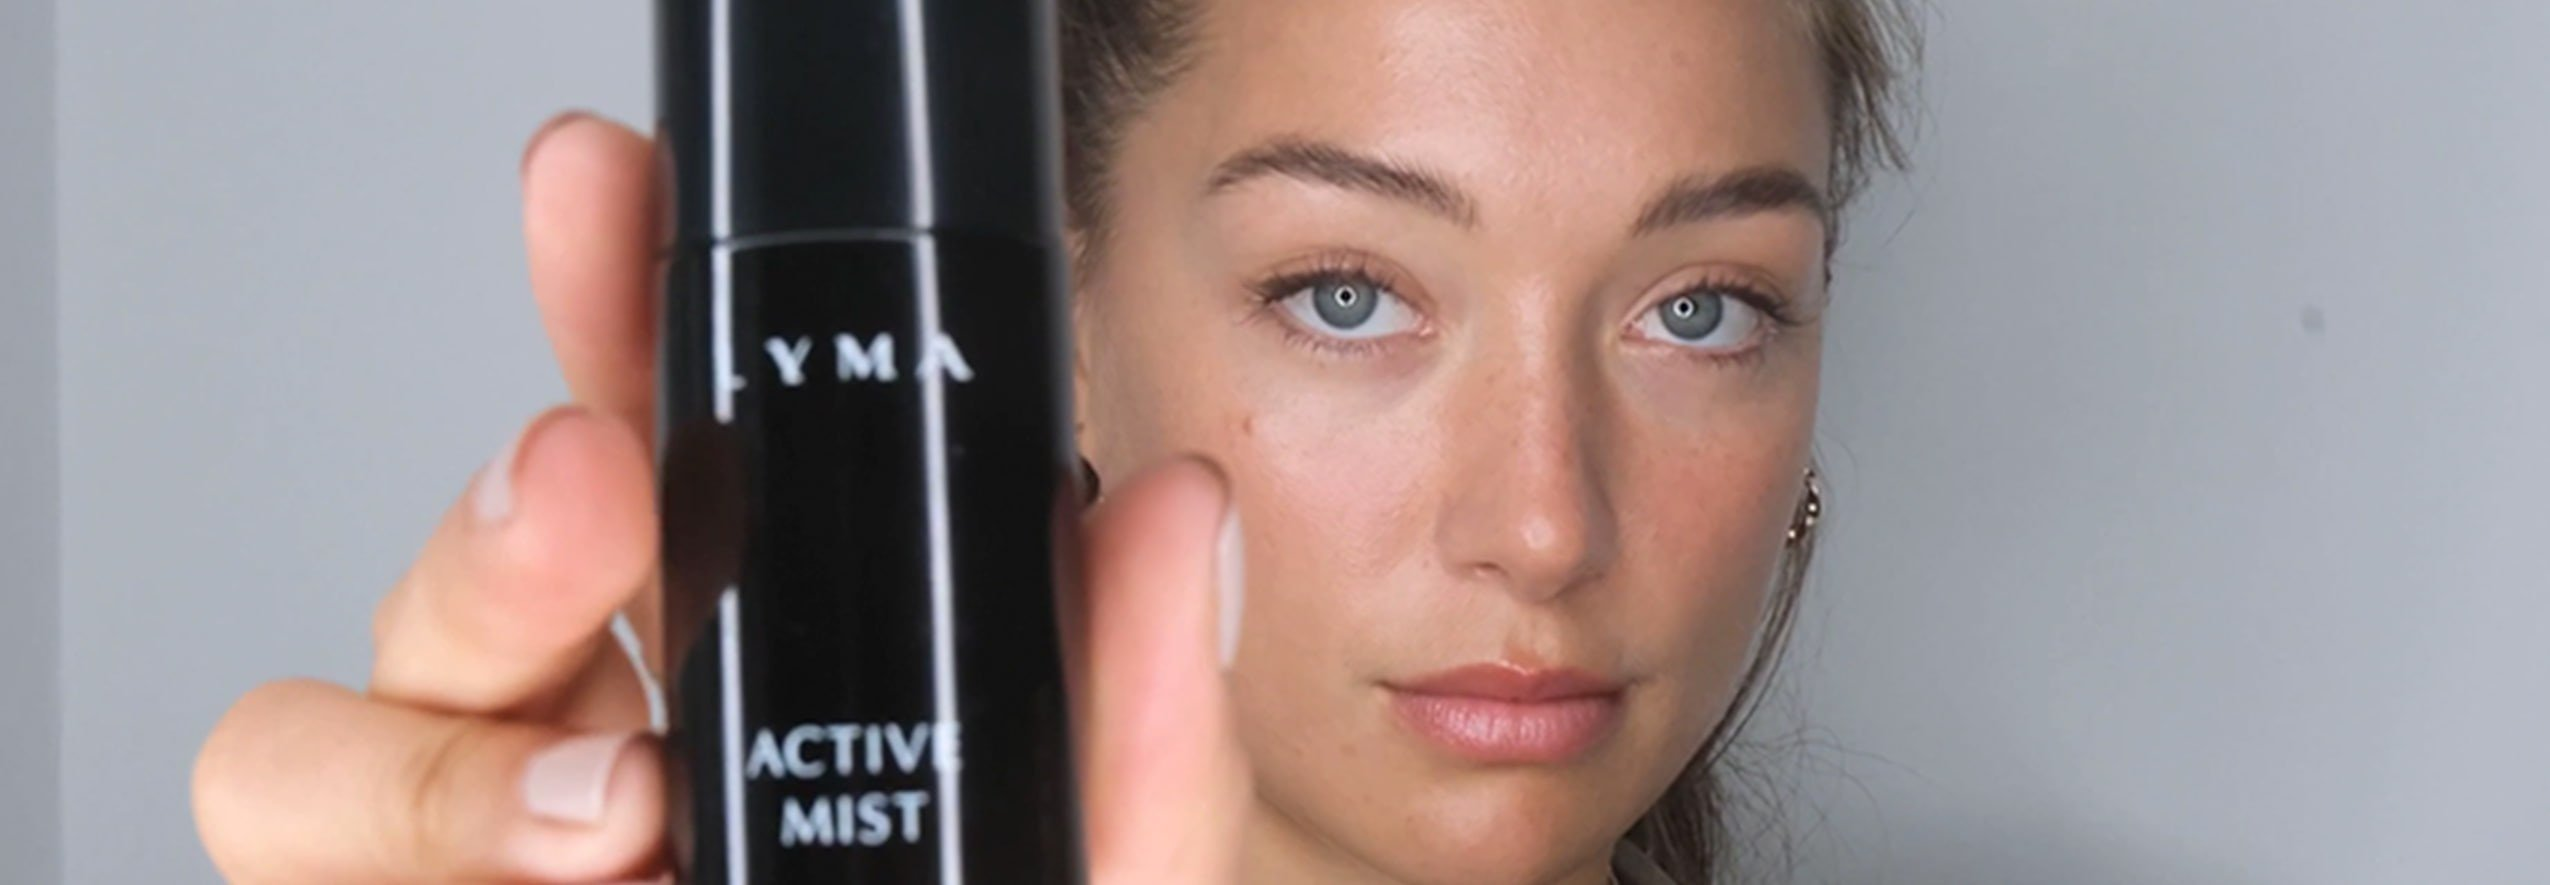 Use Lyma mist with the laser for optimum results